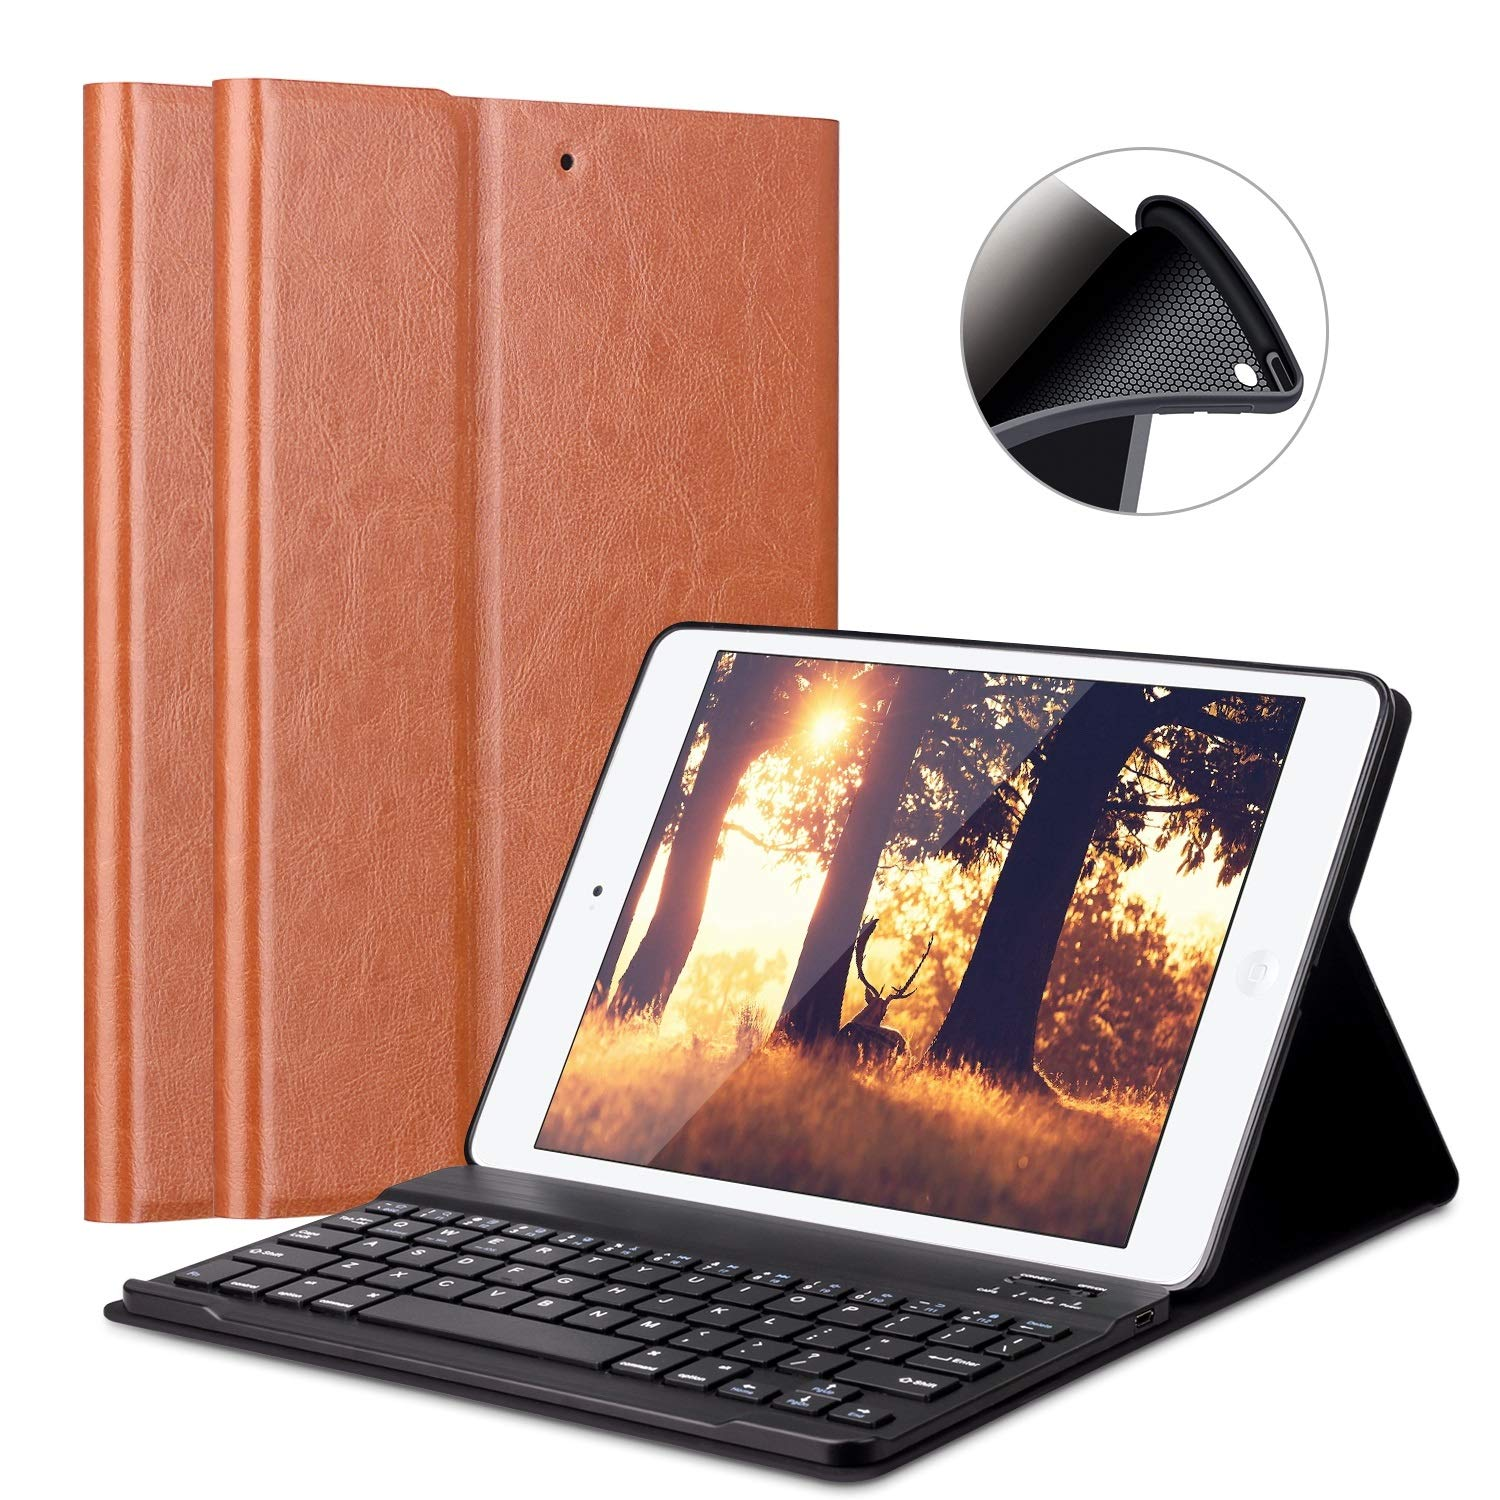 [Upgrade]Keyboard Case for New iPad 2017 9.7'/iPad Air/Air 2-LUCKYDIY Keyboard Stand Cover with[Soft TPU Case Protection]+[View Angle Adjustable]+[Magnetically Detachable Bluetooth V3.0 Keyboard] iPad 9.7 2018 / 2017 / iPad Air1 / Air2